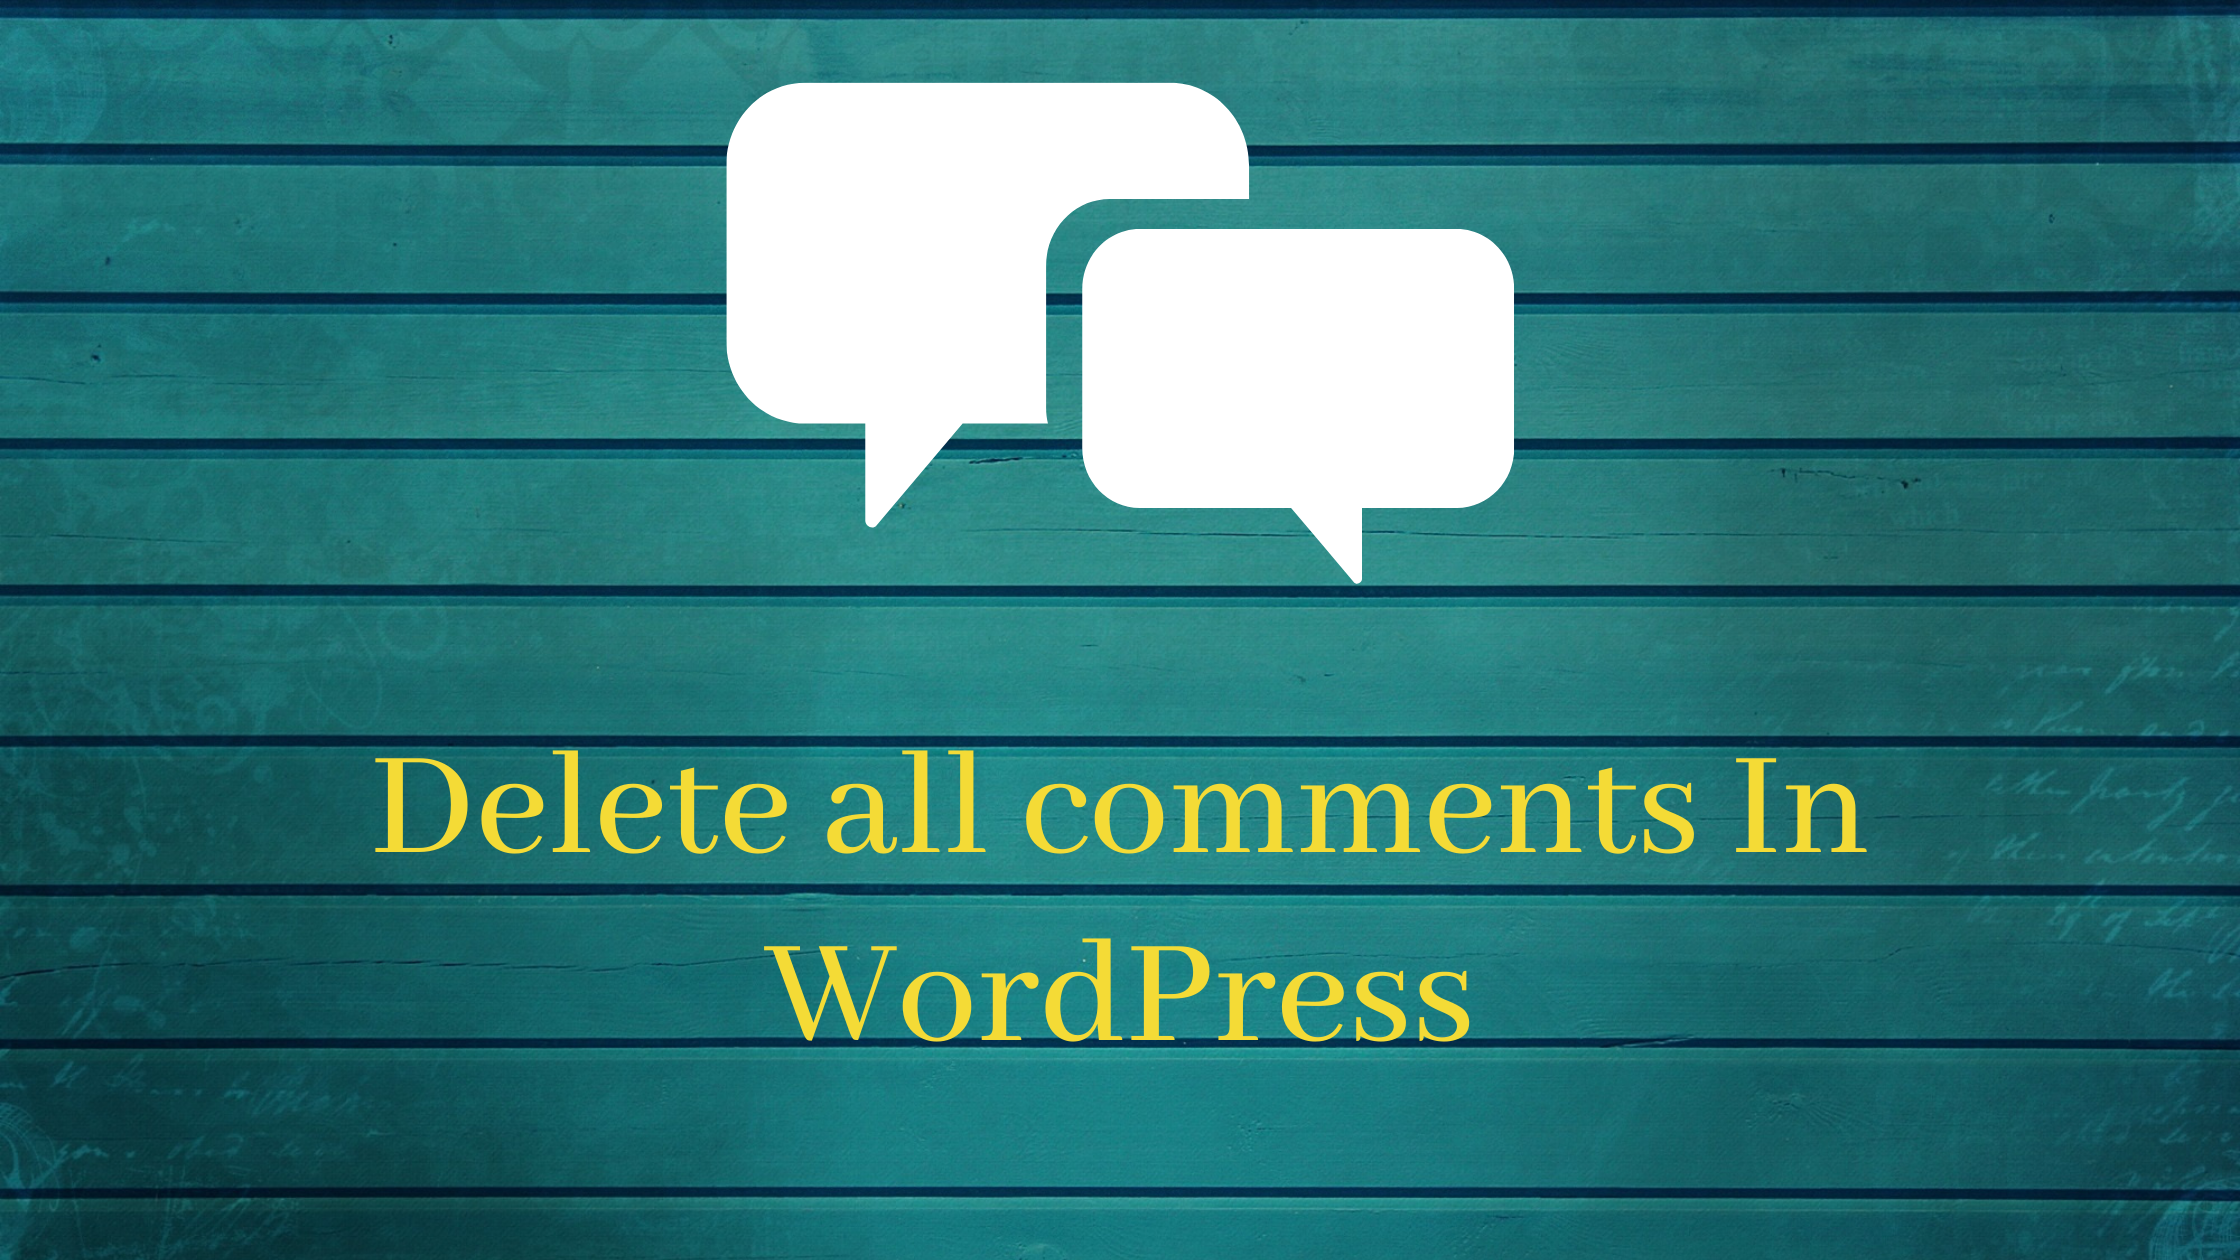 Delete all comments in WordPress